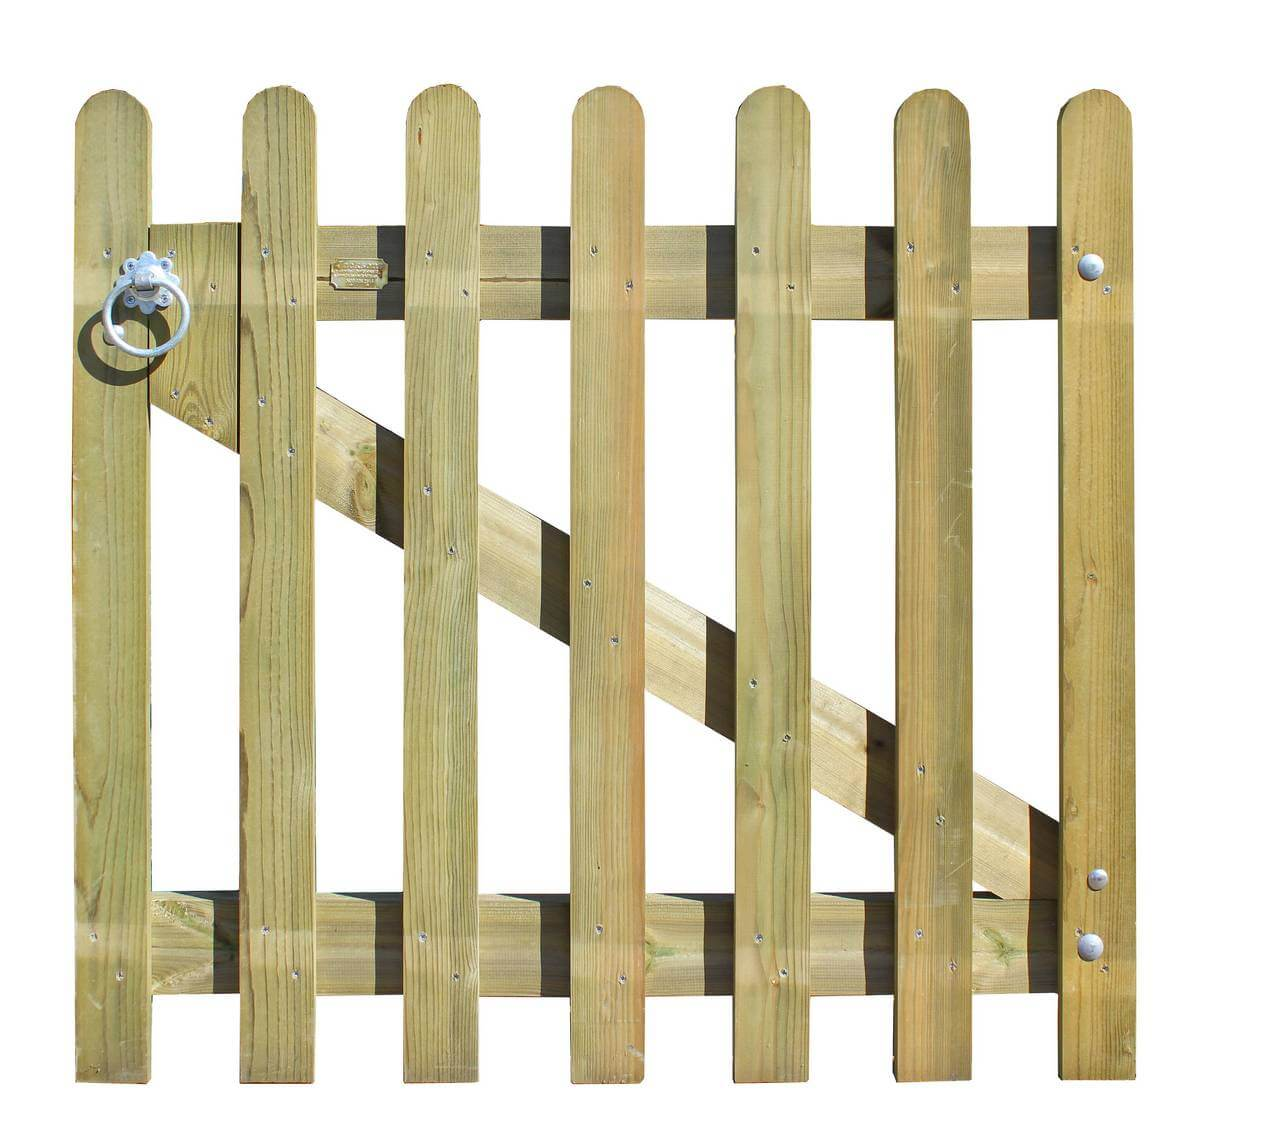 Rounded timber palisade garden gate